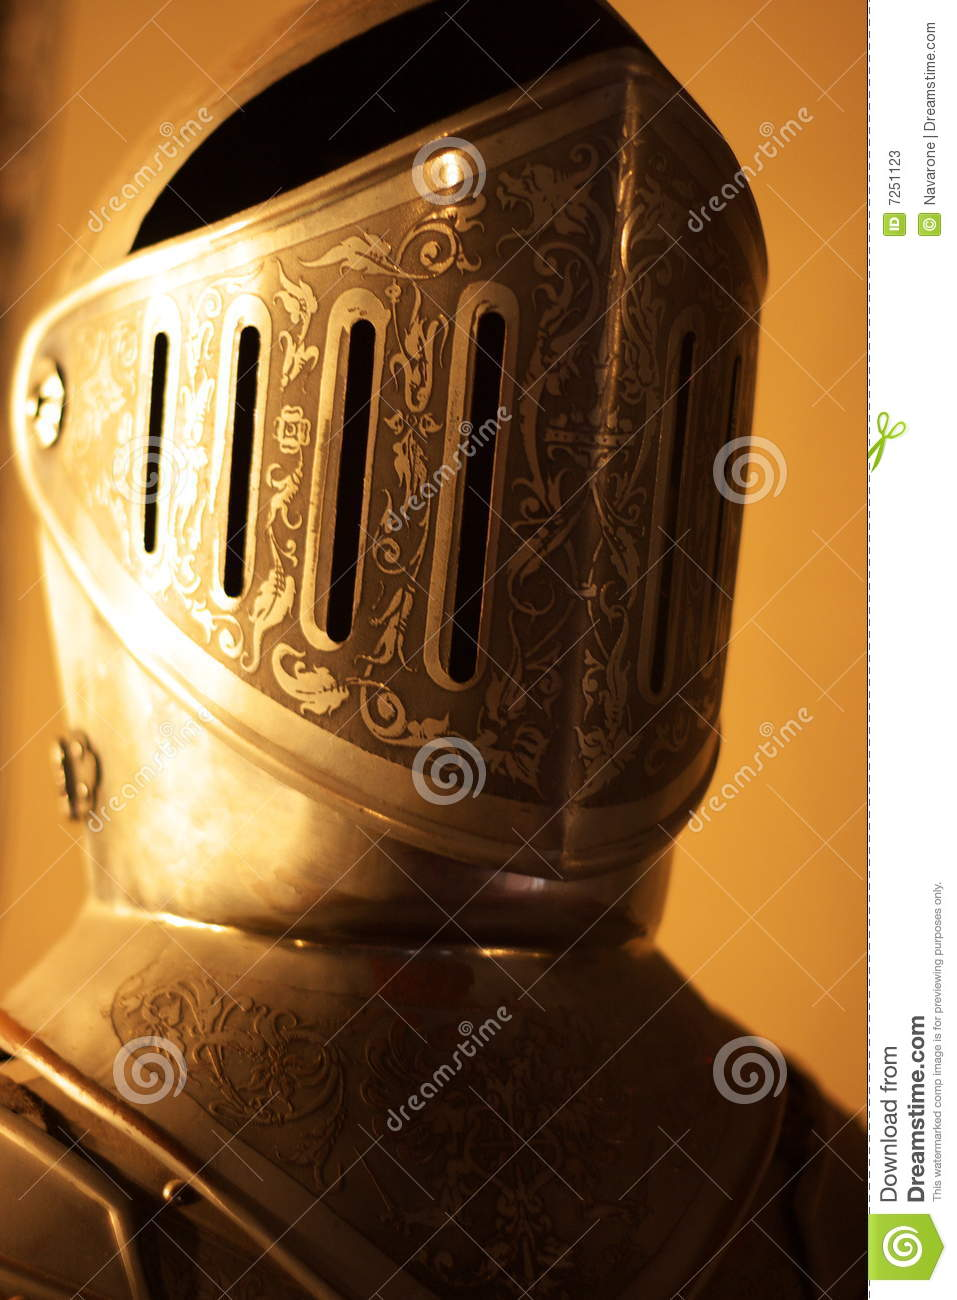 knights armour helmet stock image image of armor face